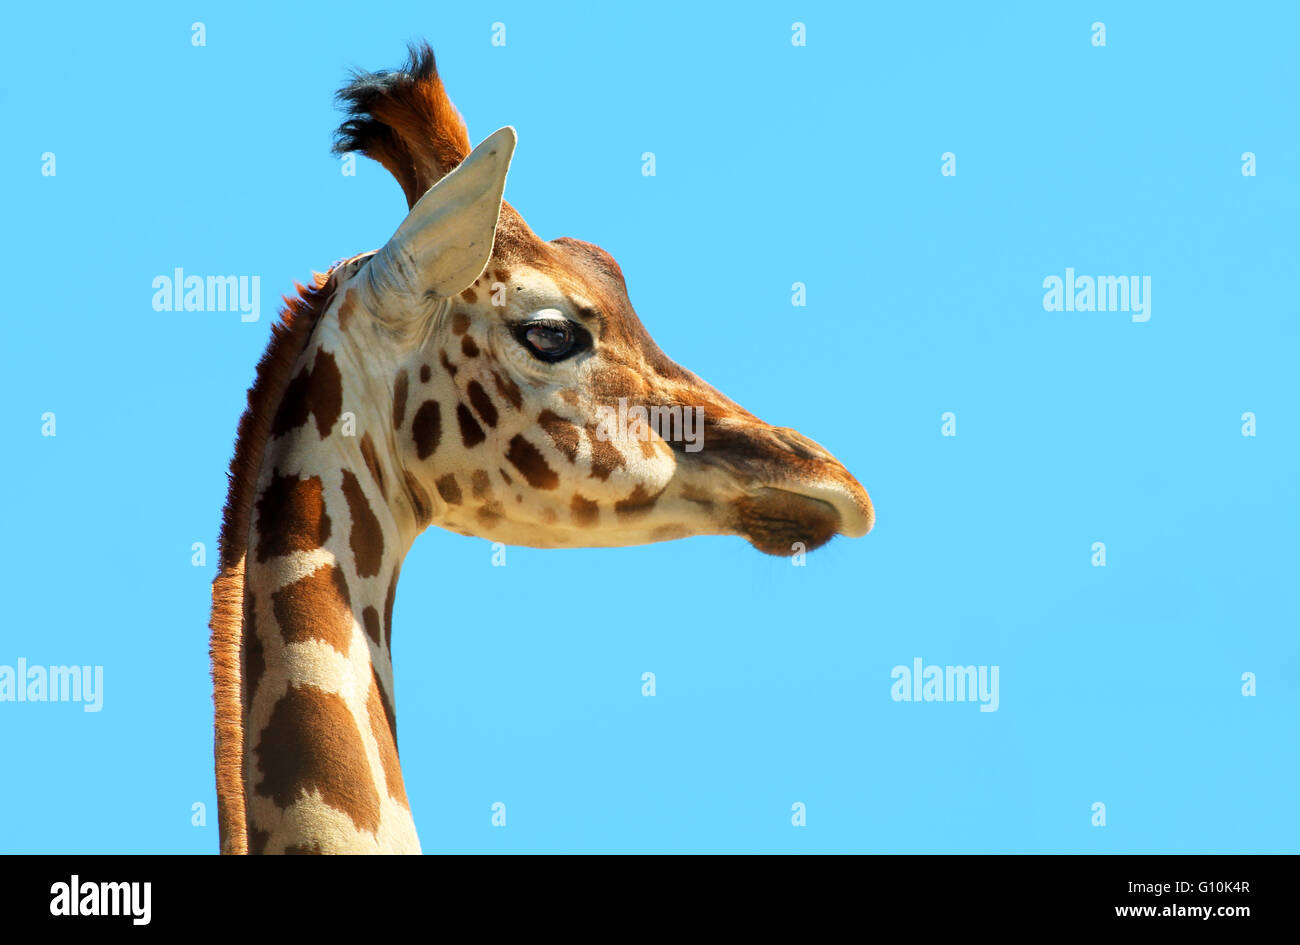 Portrait of a young giraffe - Stock Image